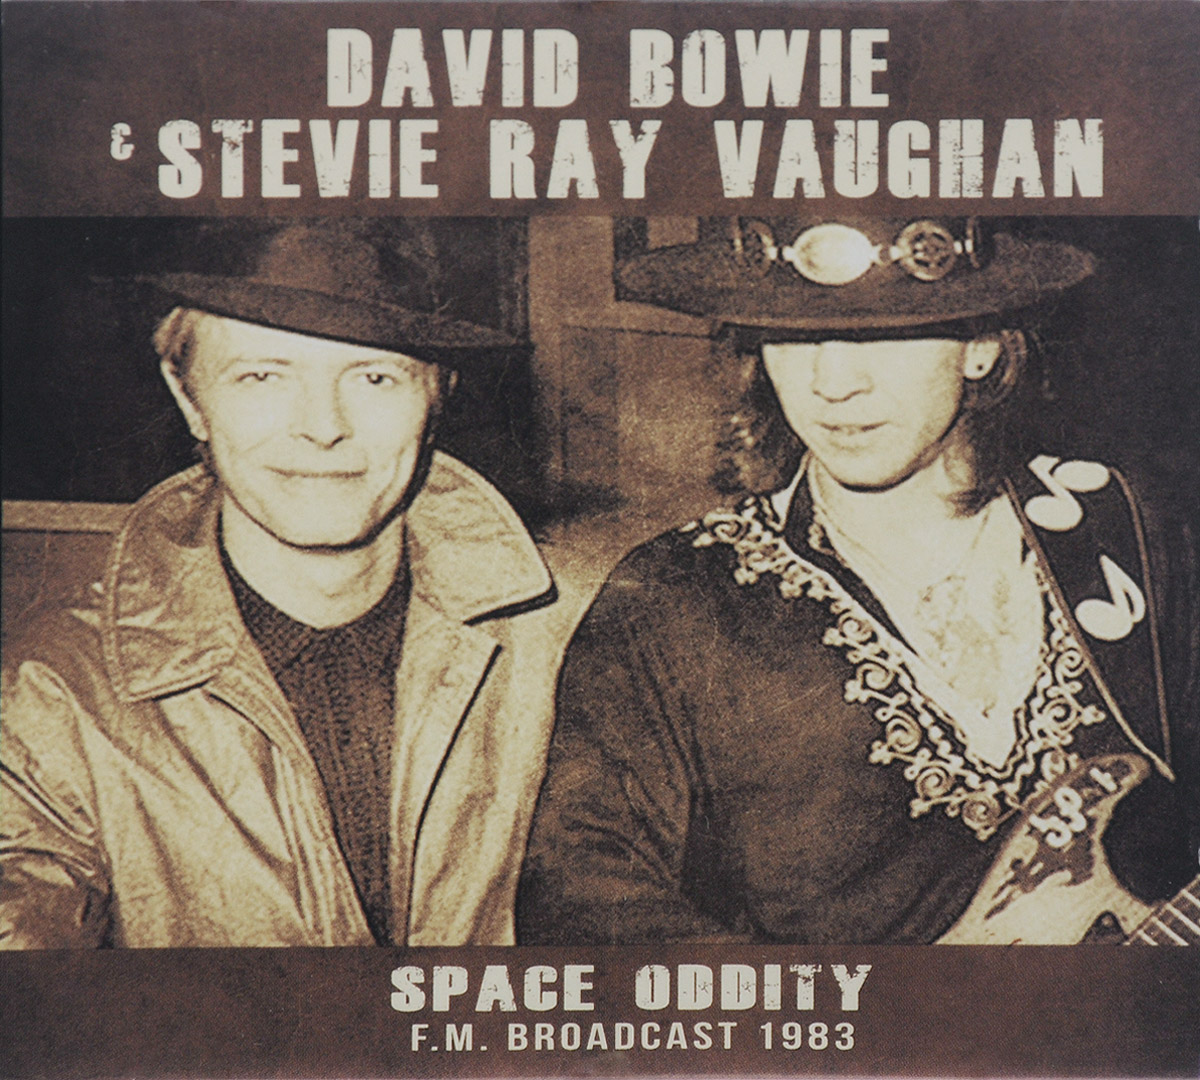 Дэвид Боуи,Стиви Рэй Воэн David Bowie & Stevie Ray Vaughan. Space Oddity F.M. Broadcast 1983 stevie ray vaughan stevie ray vaughan texas flood